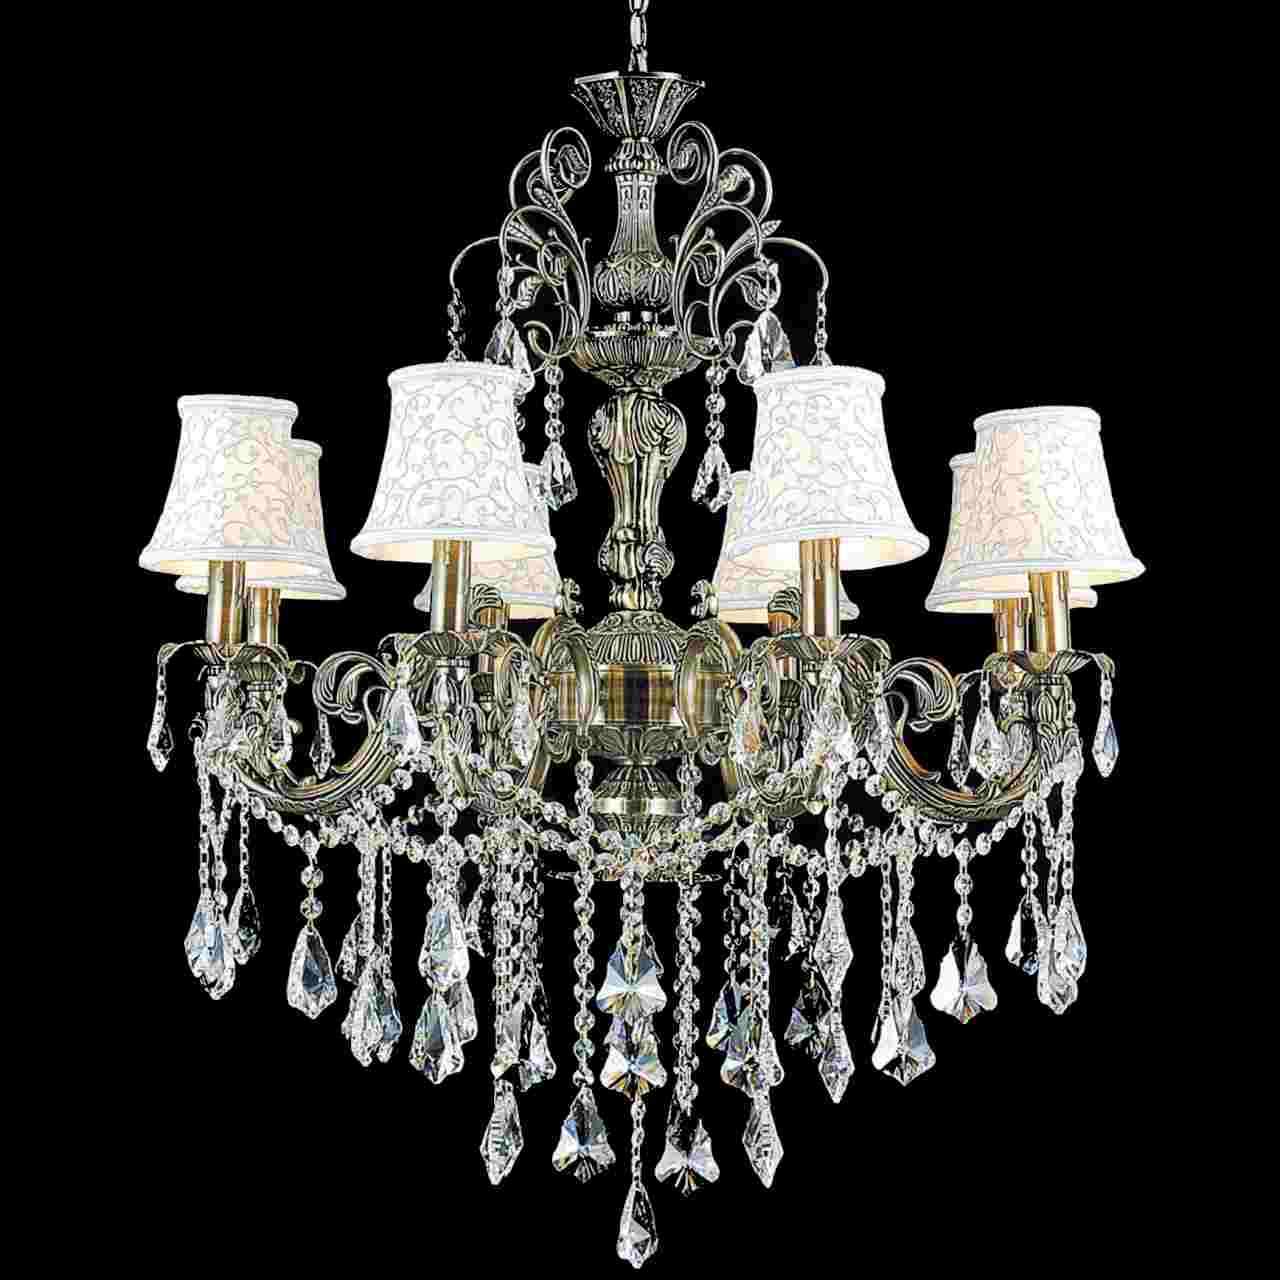 Brizzo Lighting Stores 30 Ottone Traditional Candle Round Within Chandelier With Shades And Crystals (Image 12 of 25)